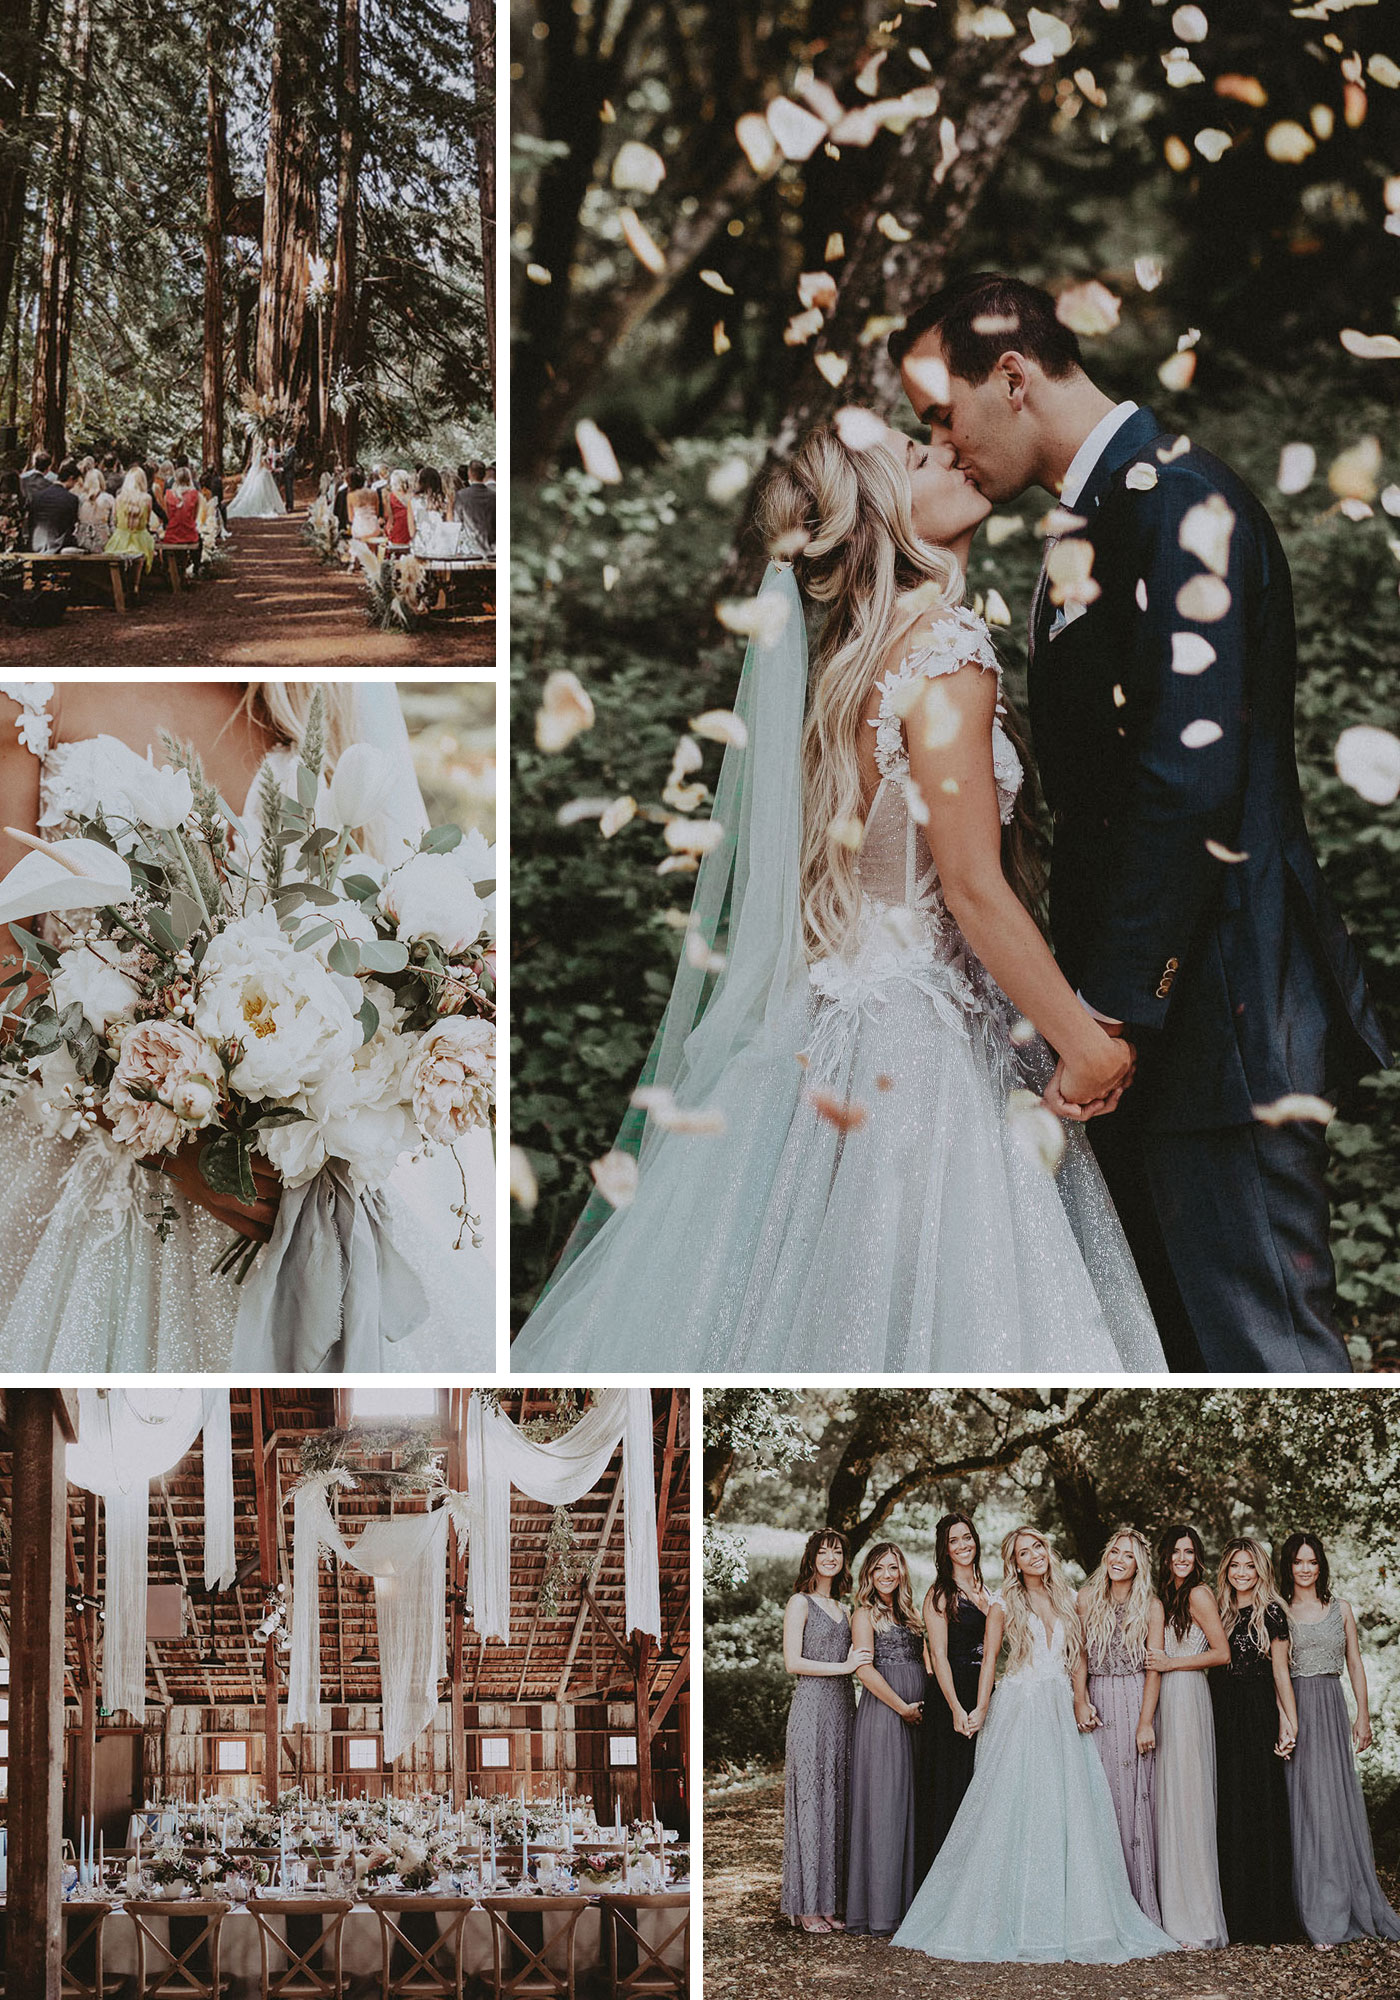 Chantelle Paige's Magical Fairy Tale Wedding in the Woods